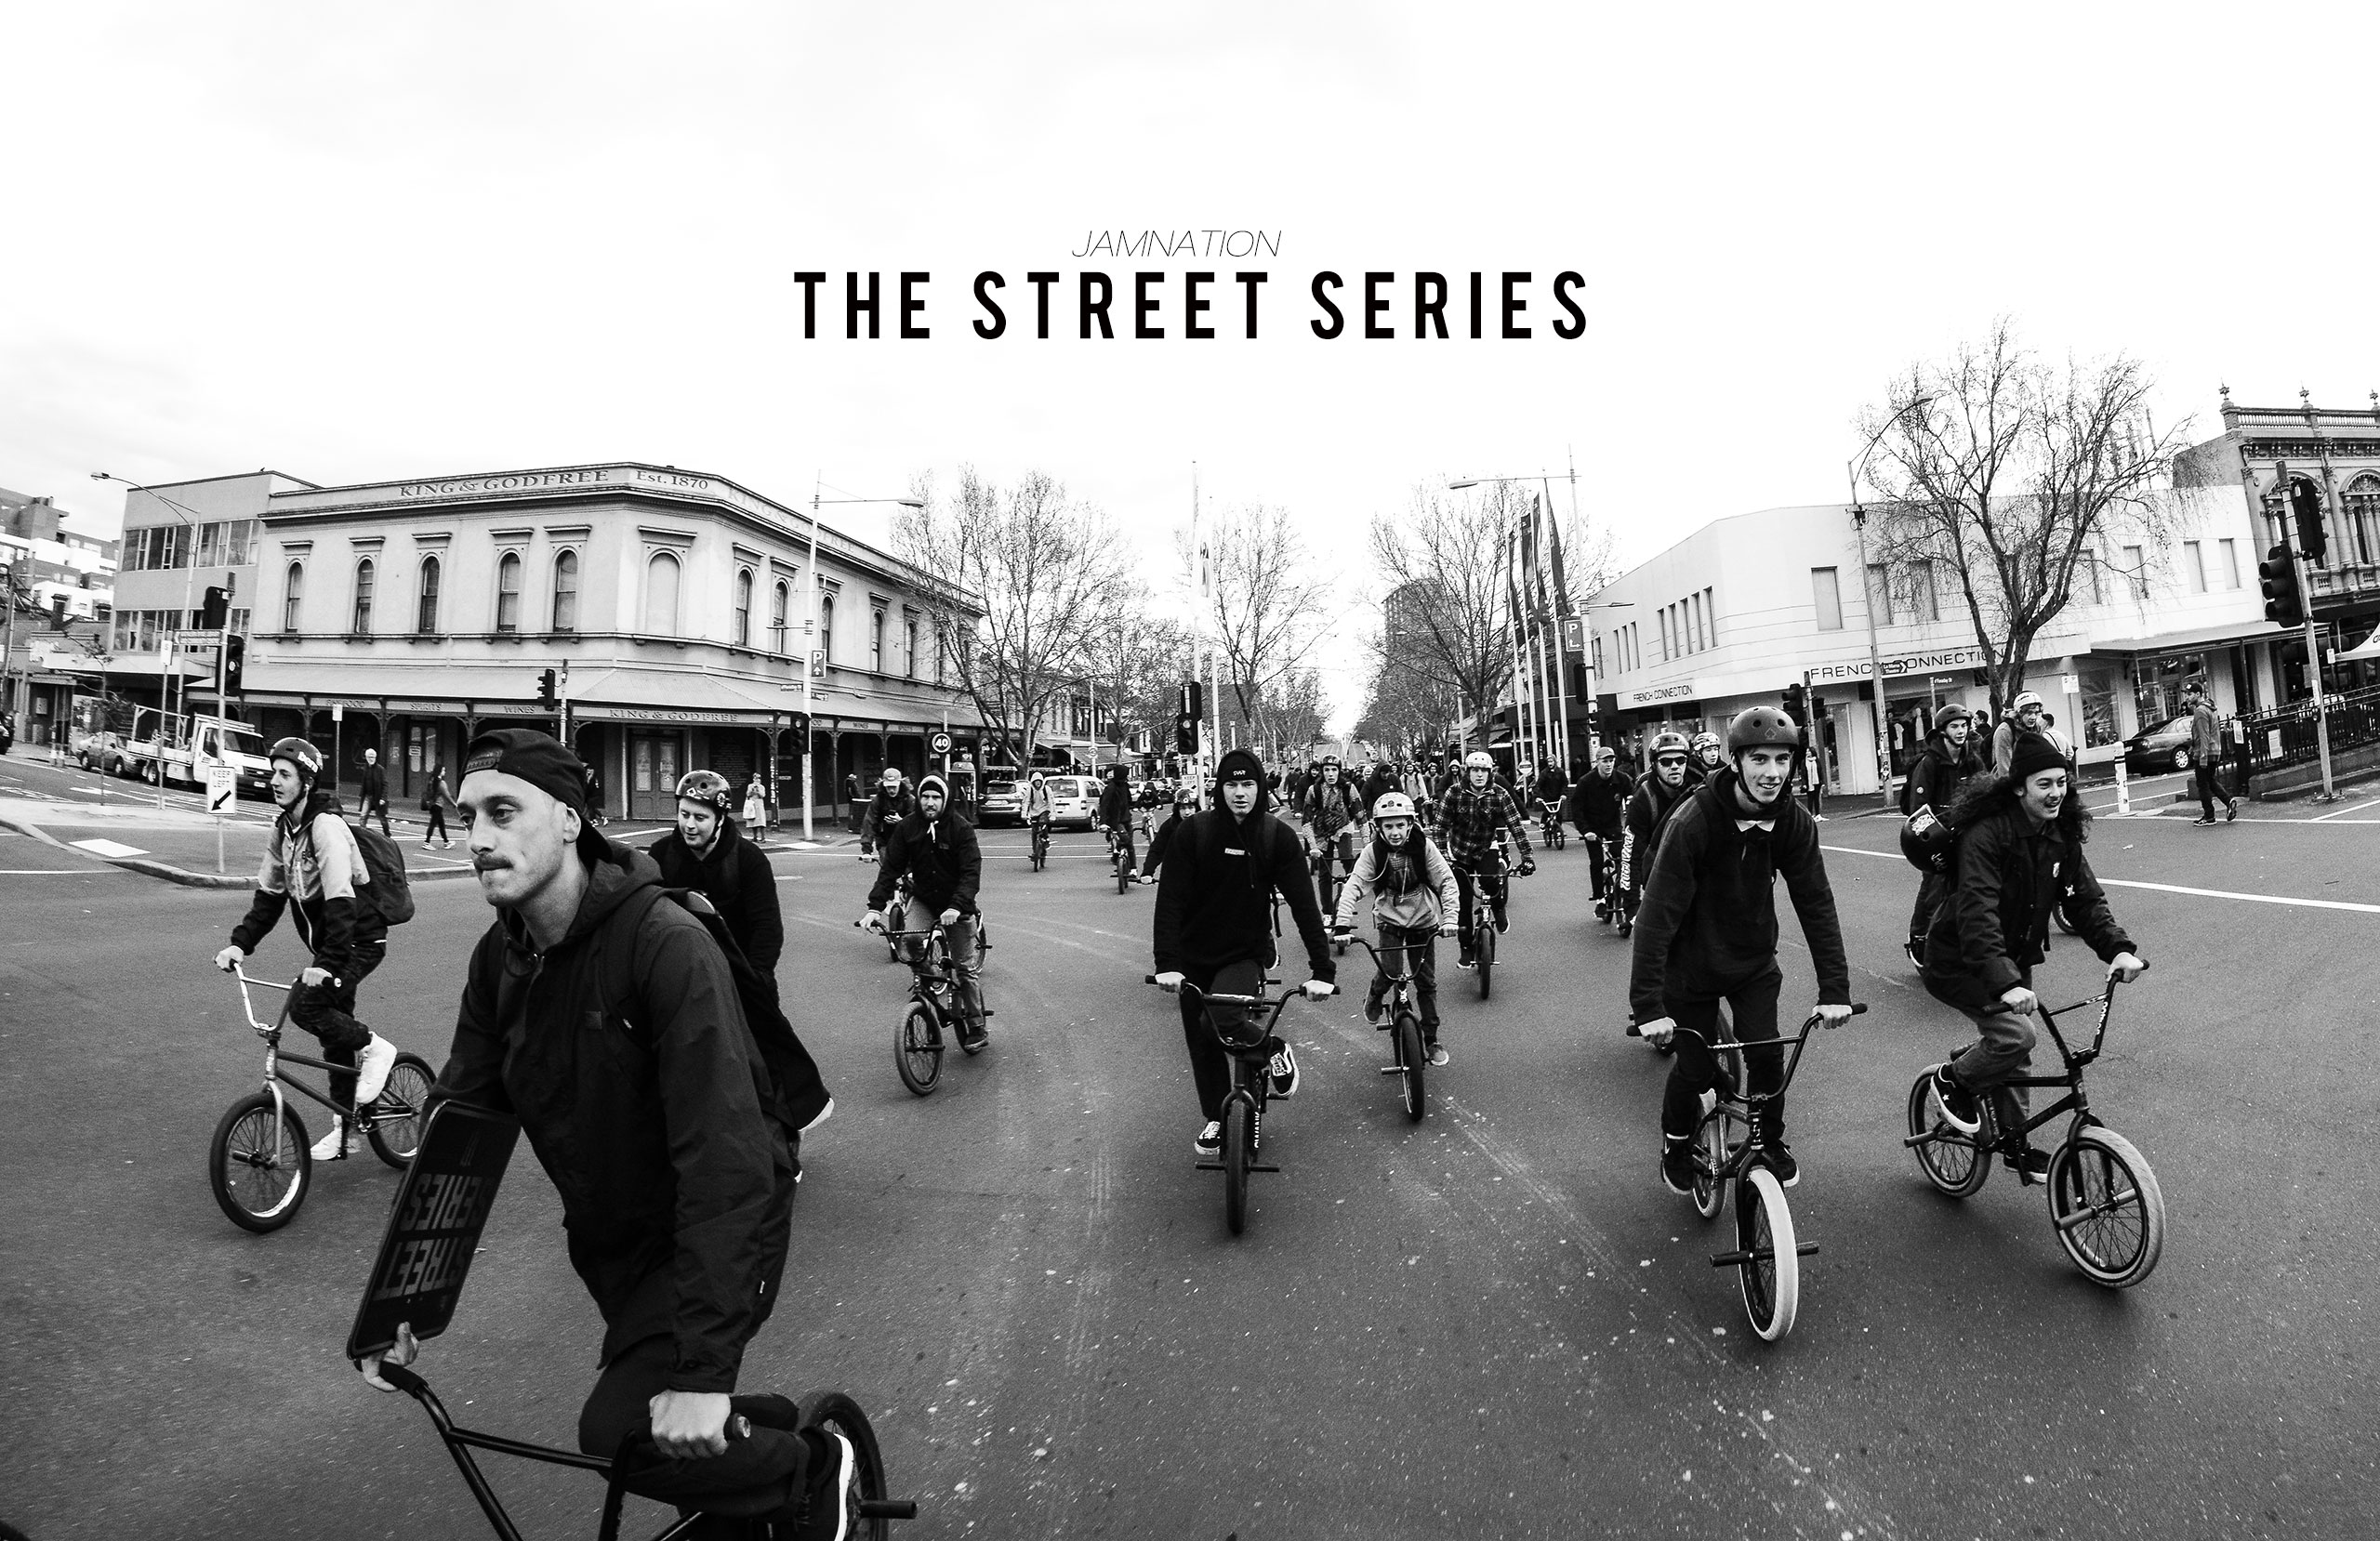 JAMNATION – THE STREET SERIES #2